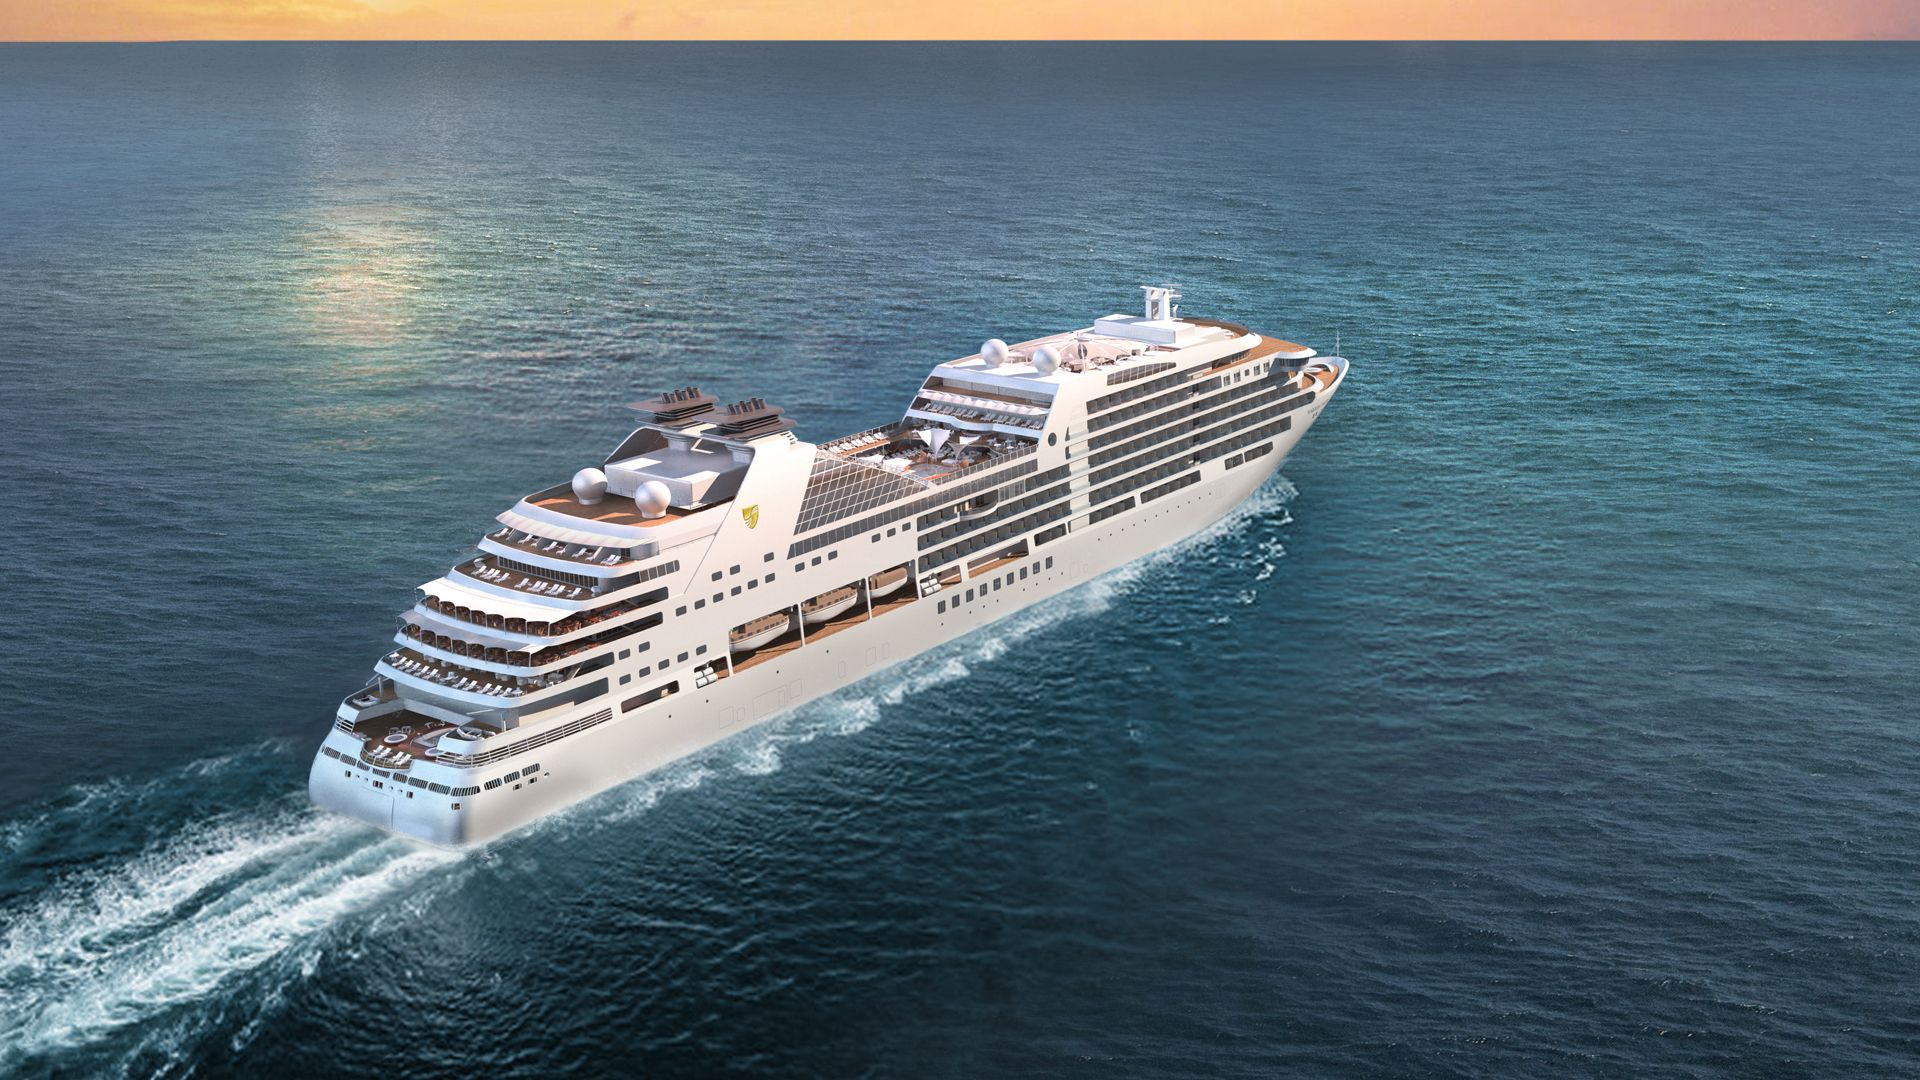 Seabourn takes delivery of the Encore